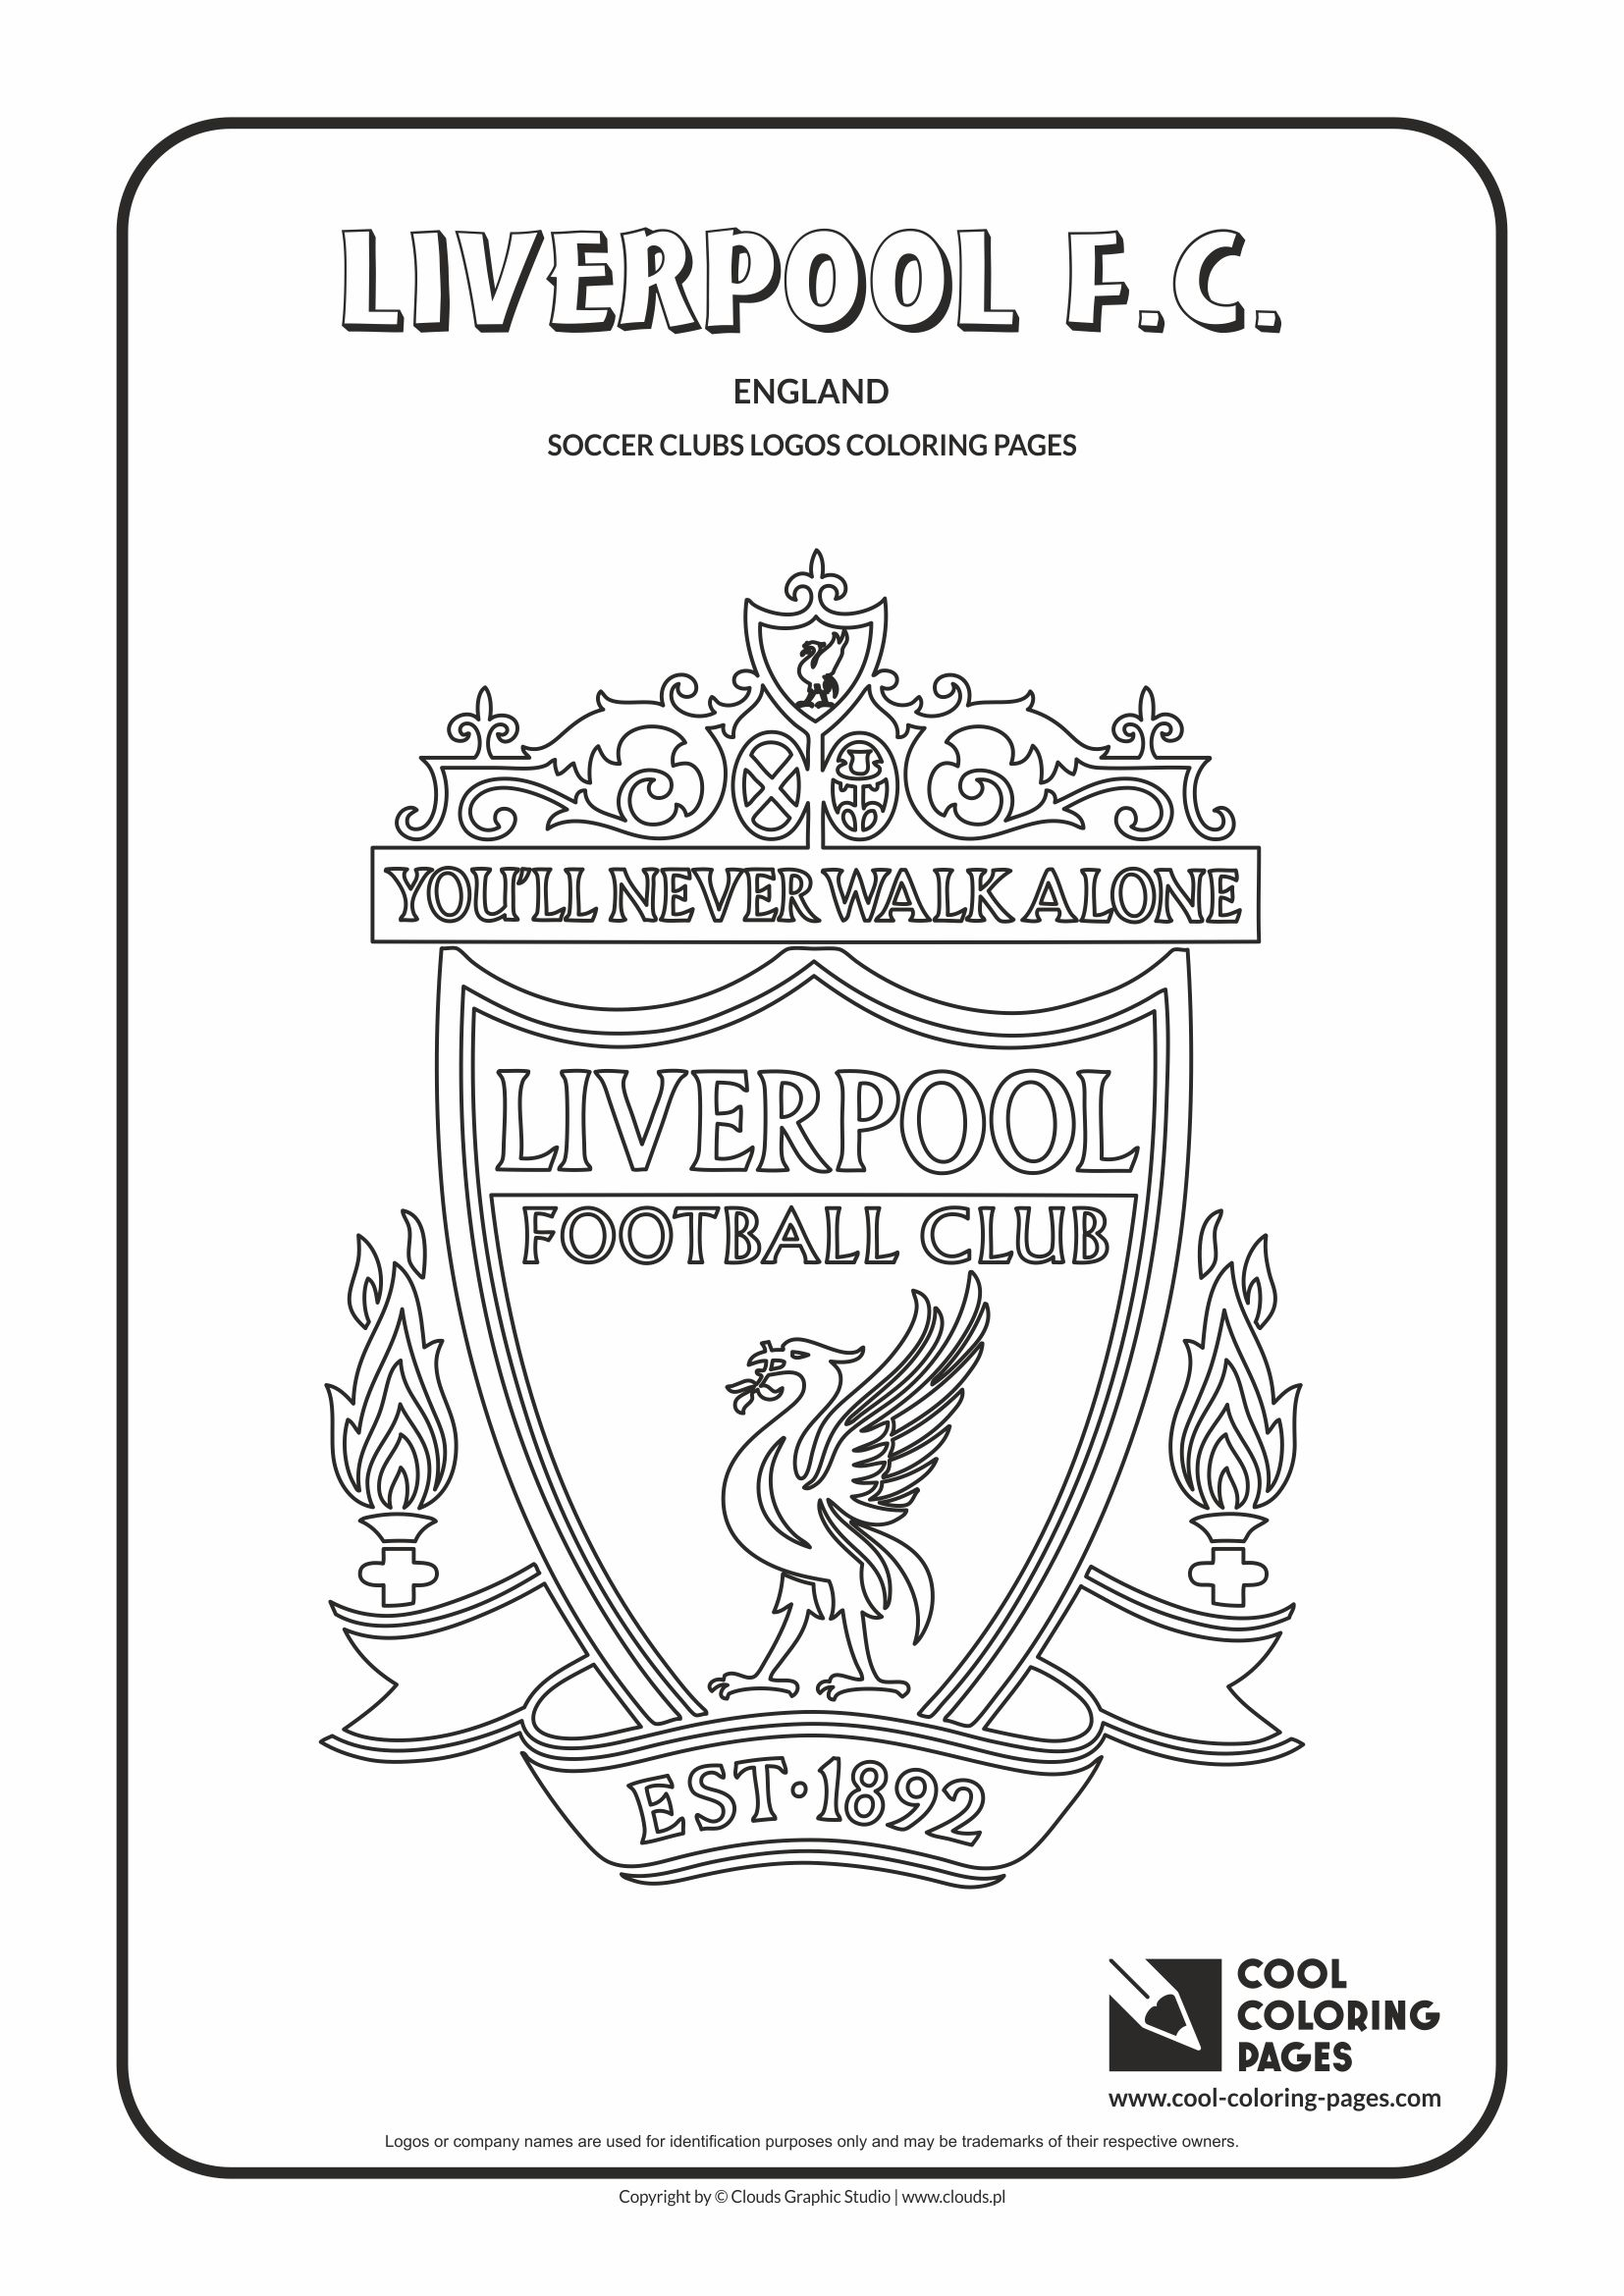 Cool Coloring Pages Liverpool F.C. Logo Coloring Page